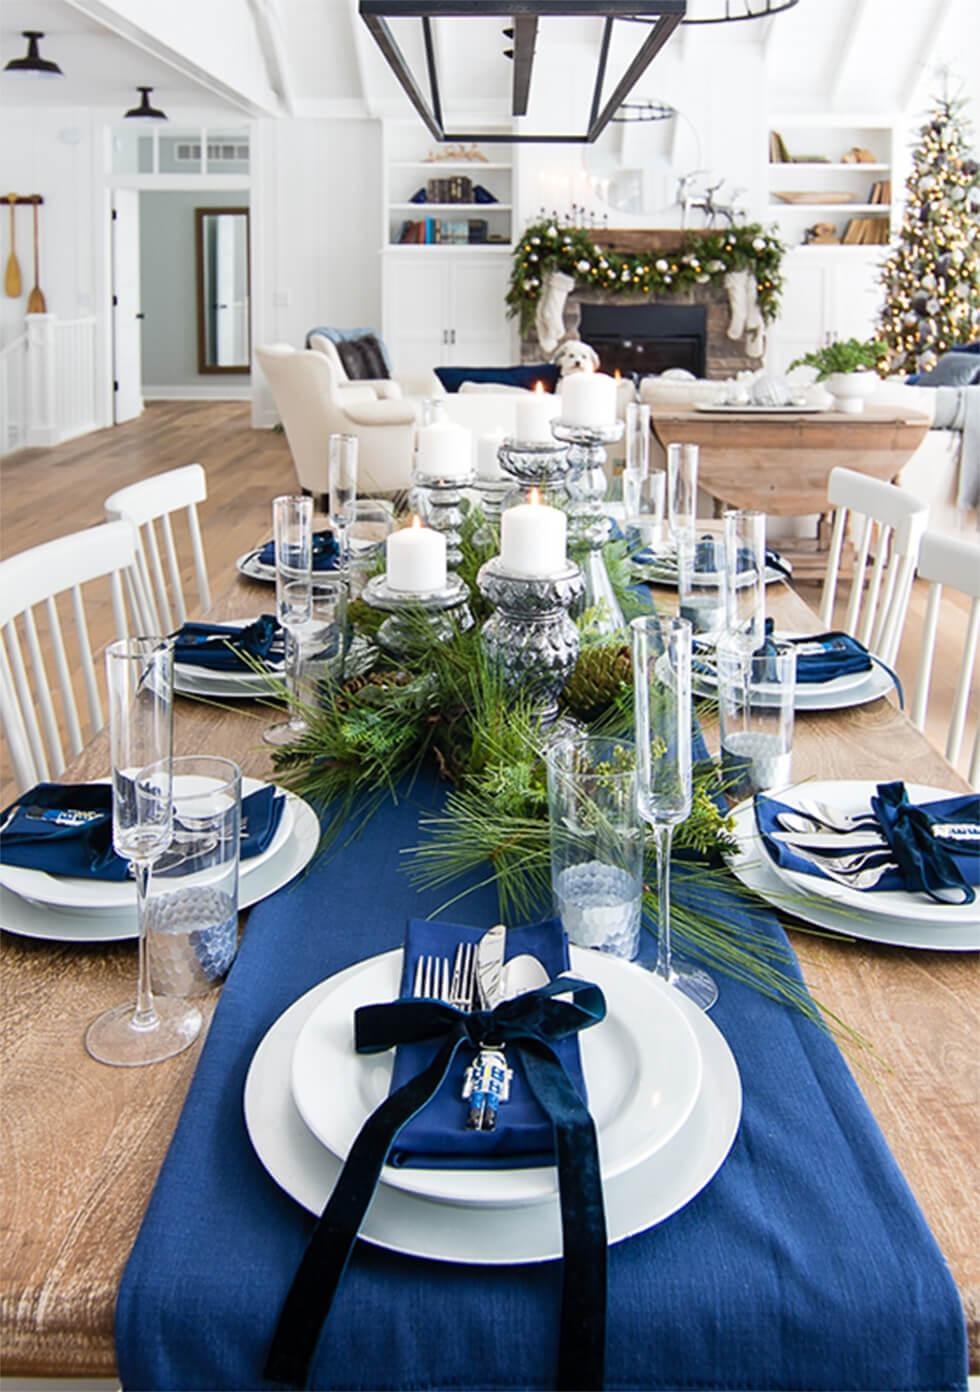 Wooden dining table with blue and white settings